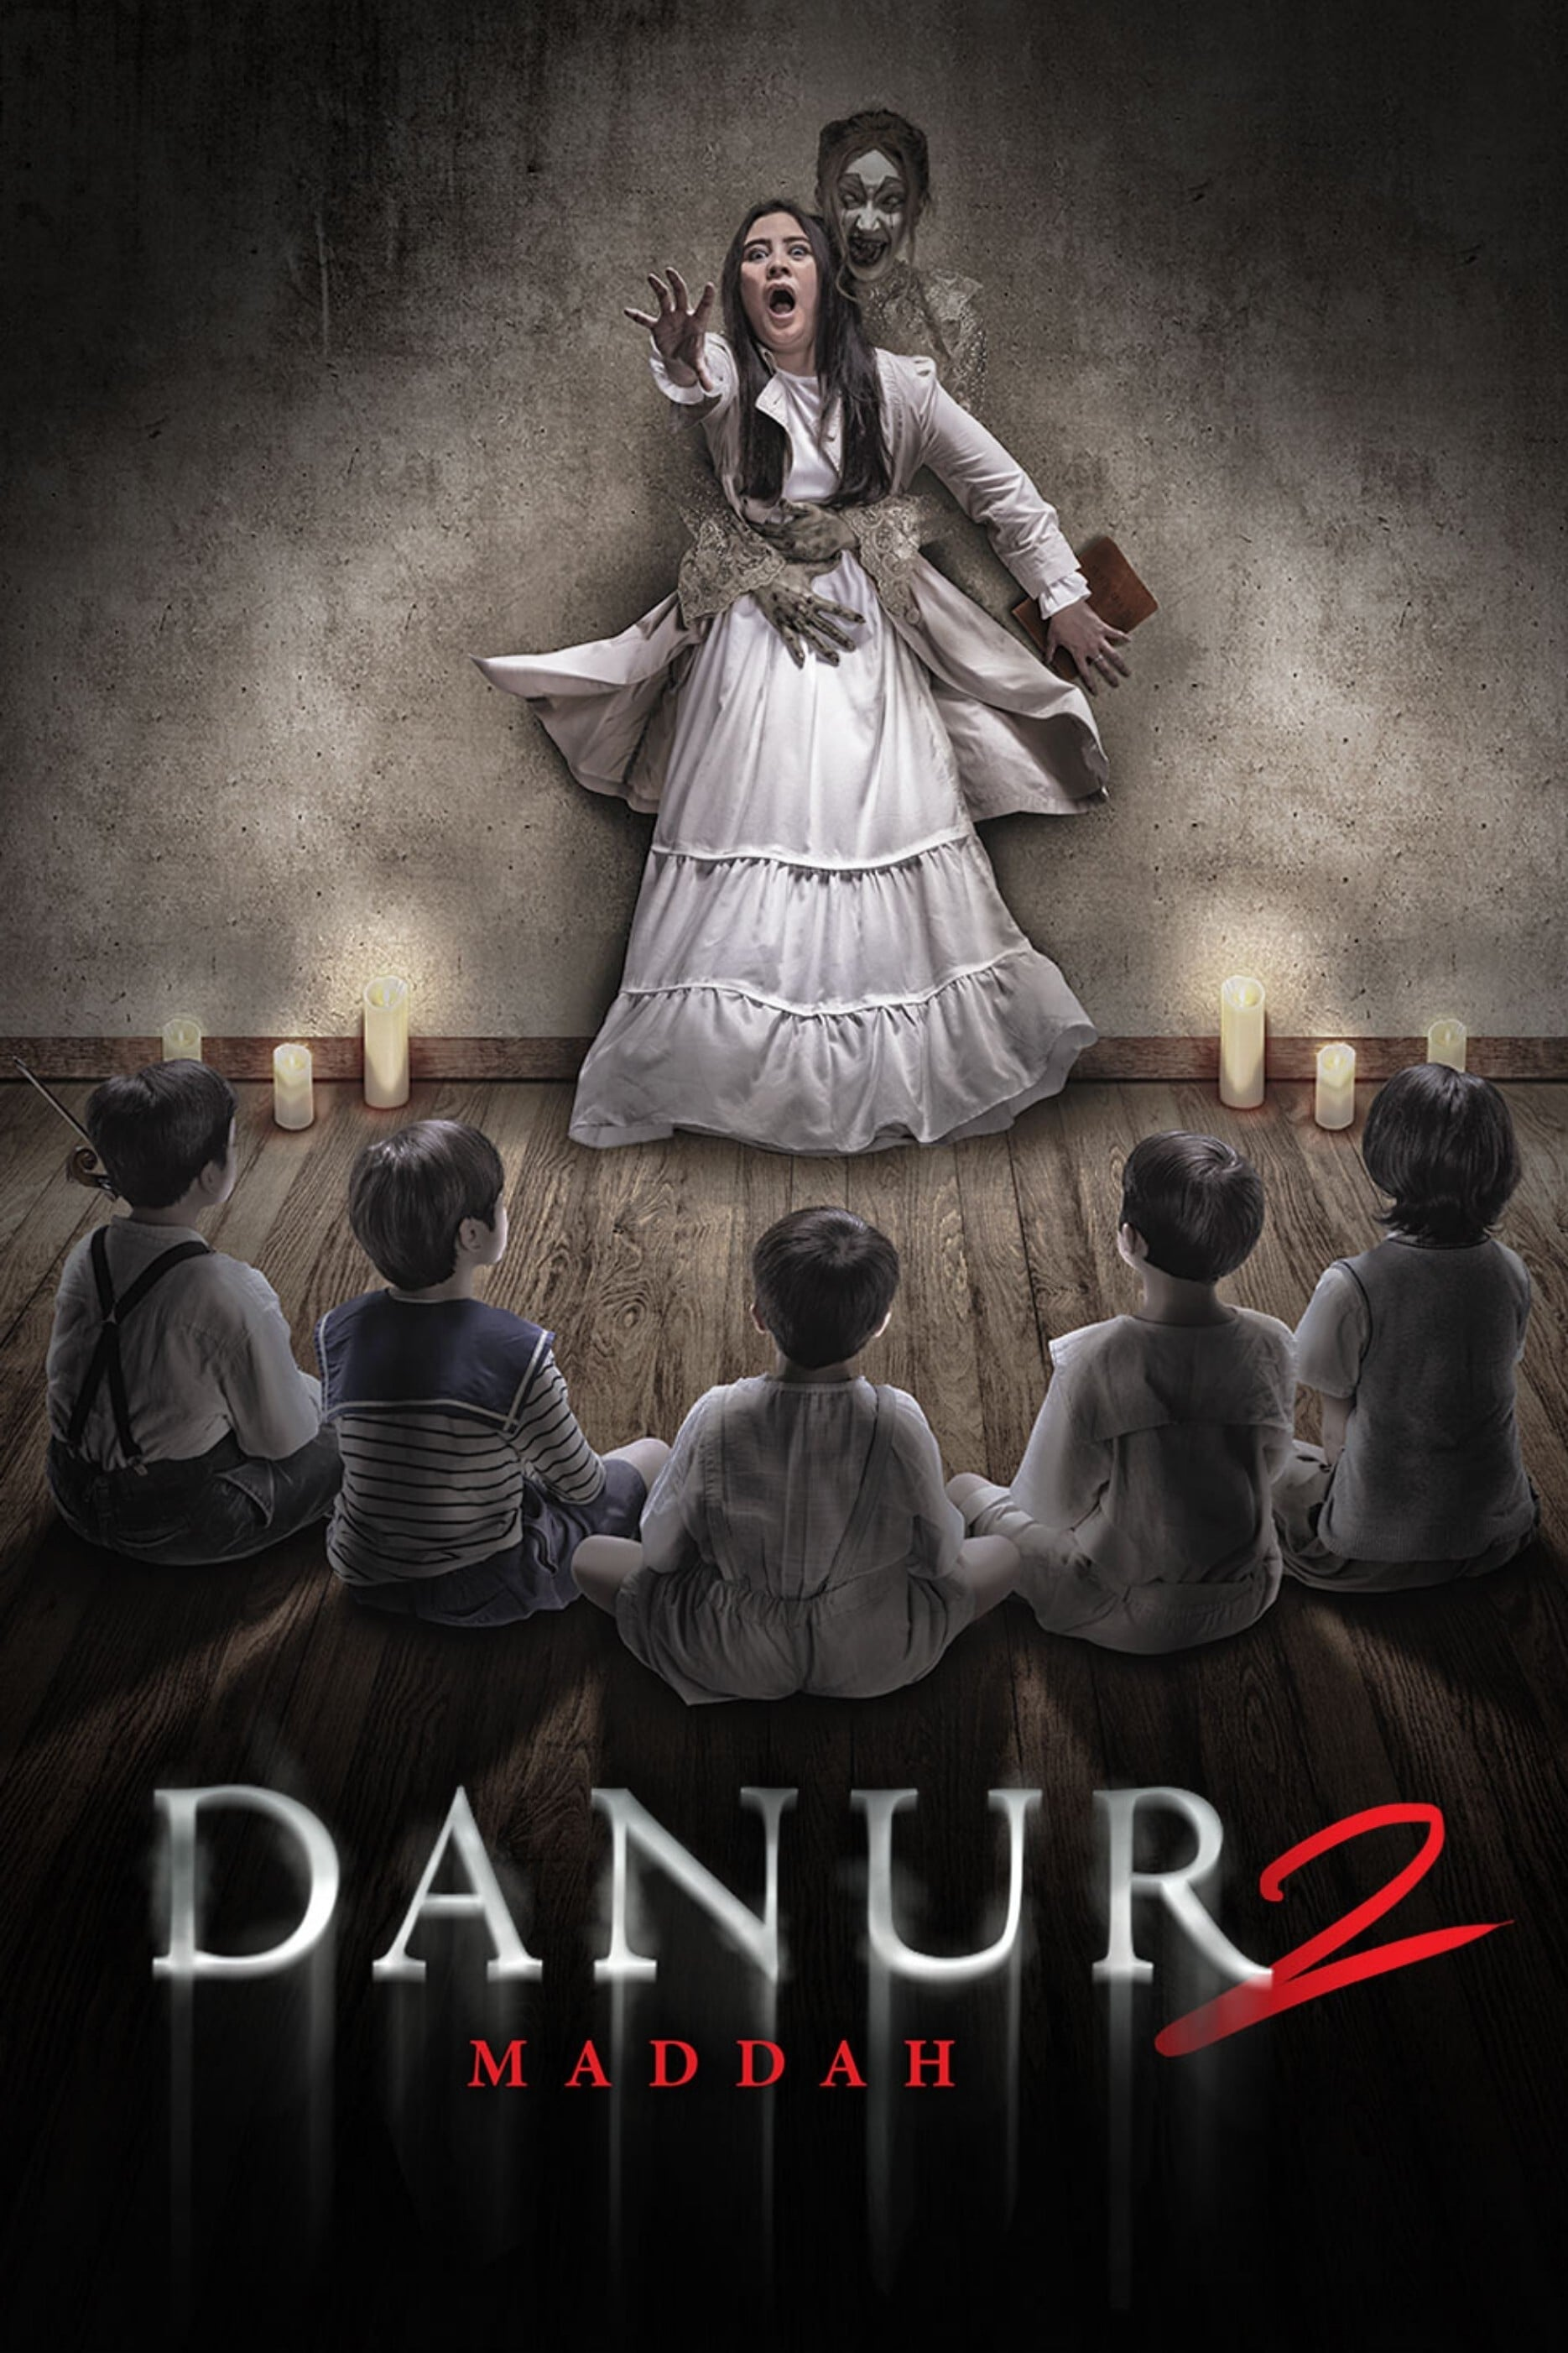 Download Film Danur 3 : download, danur, Danur, Maddah, (2018), Movie., Where, Watch, Streaming, Online